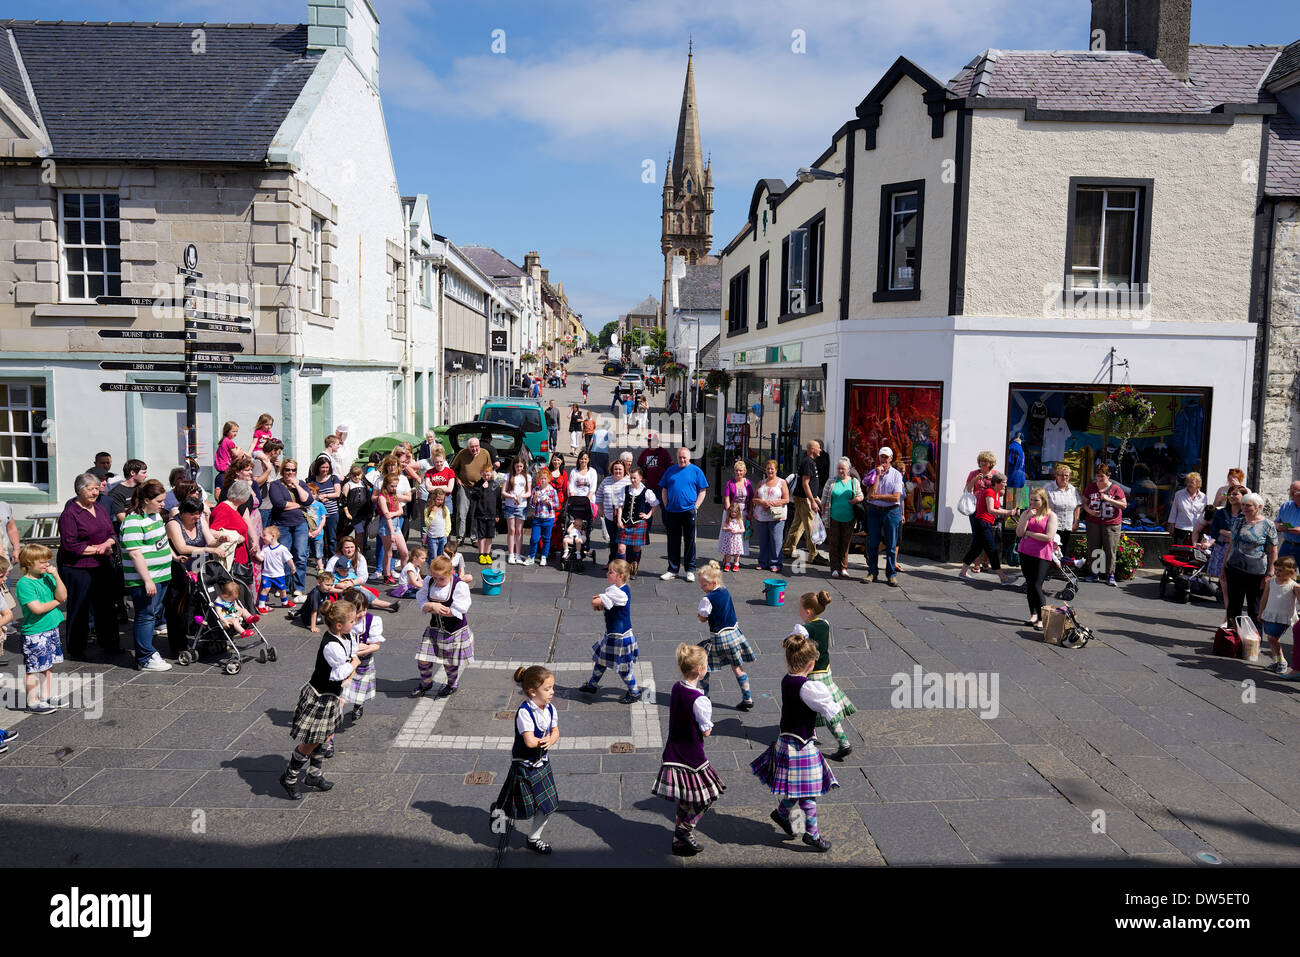 Stornoway, Highland Dancing girls in Stornoway town centre - Stock Image